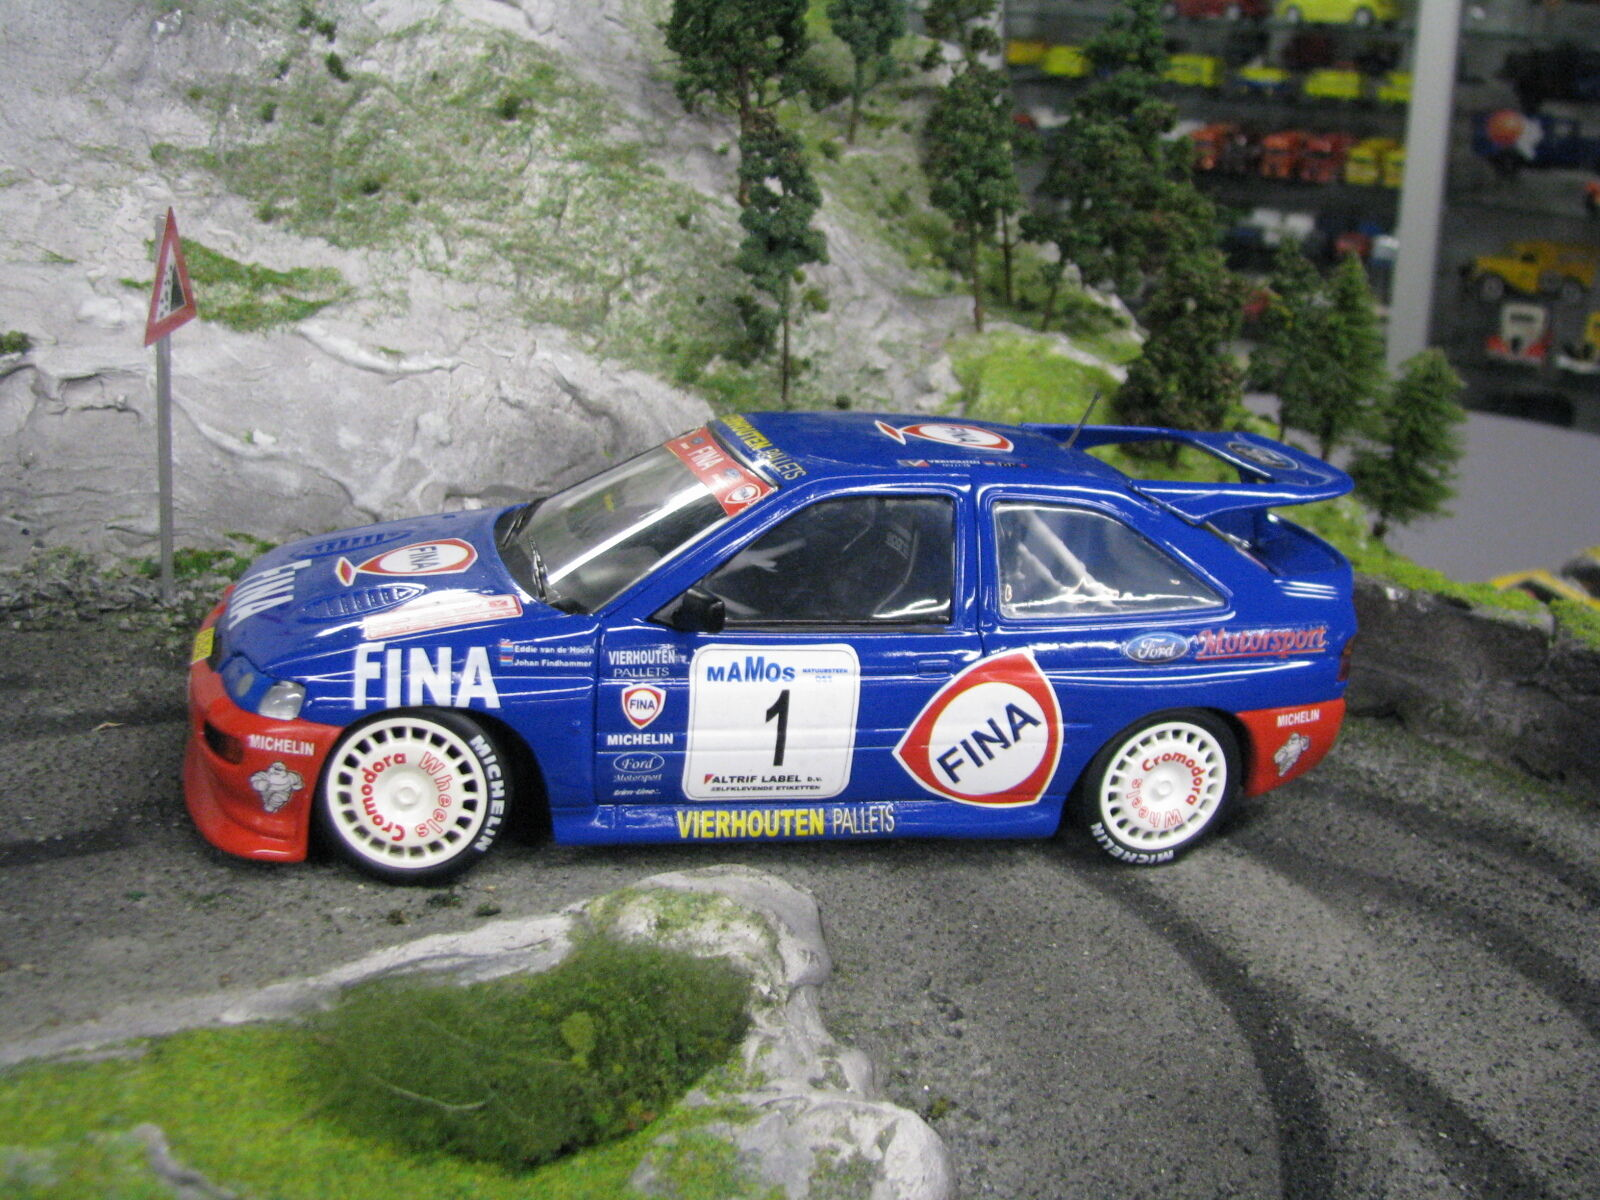 UT Models Ford Escort RS Cosworth 1998 1:18  1 van den Hoorn / Findhammer